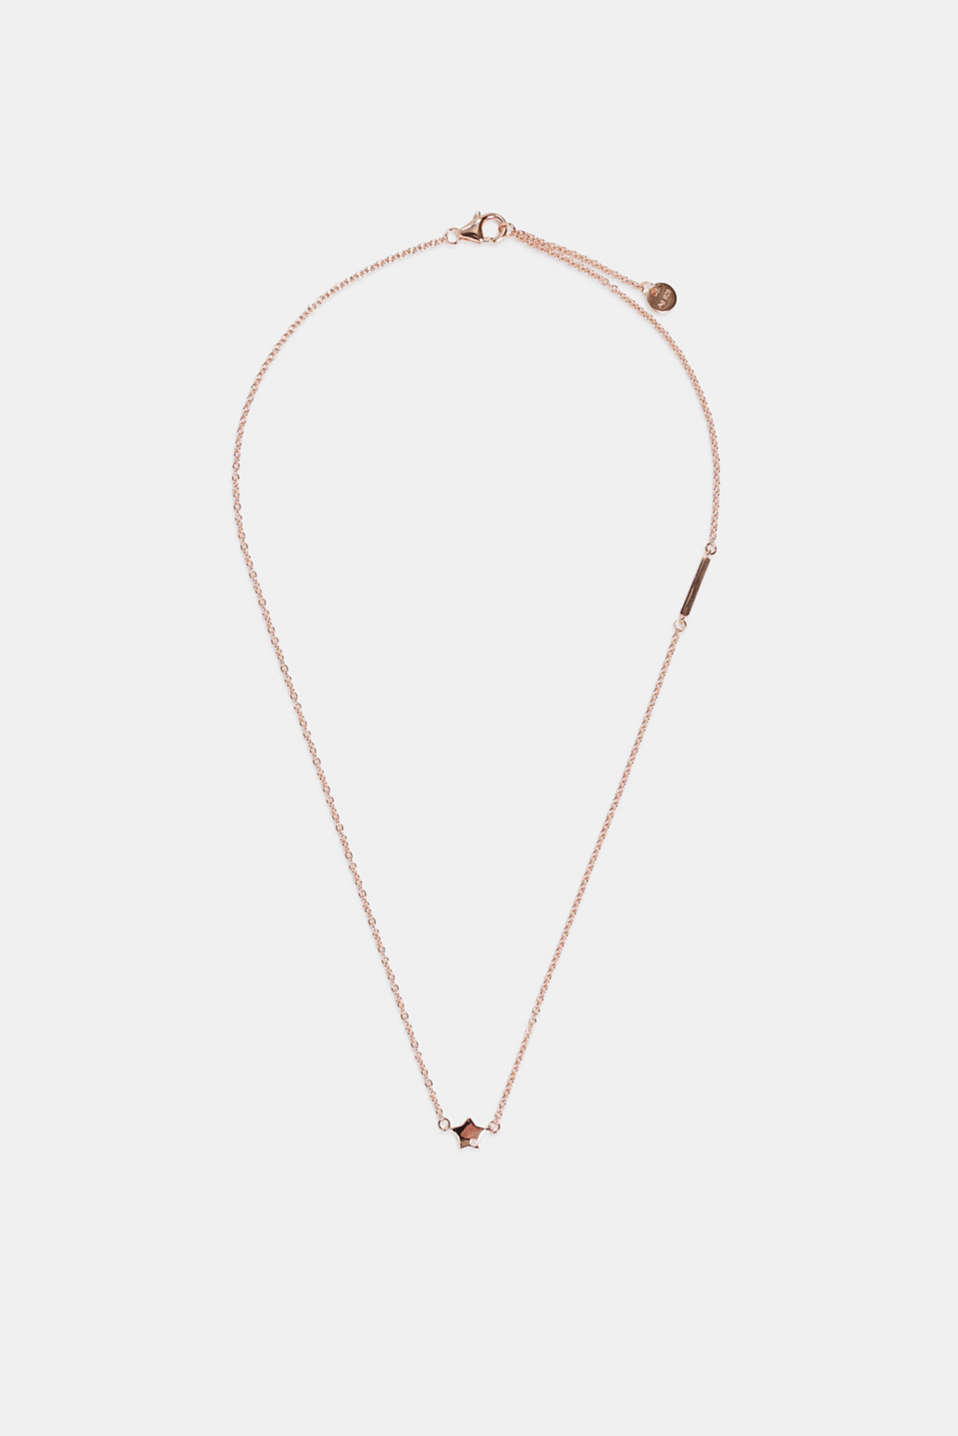 Necklace with star pendant, silver, ROSEGOLD, detail image number 1